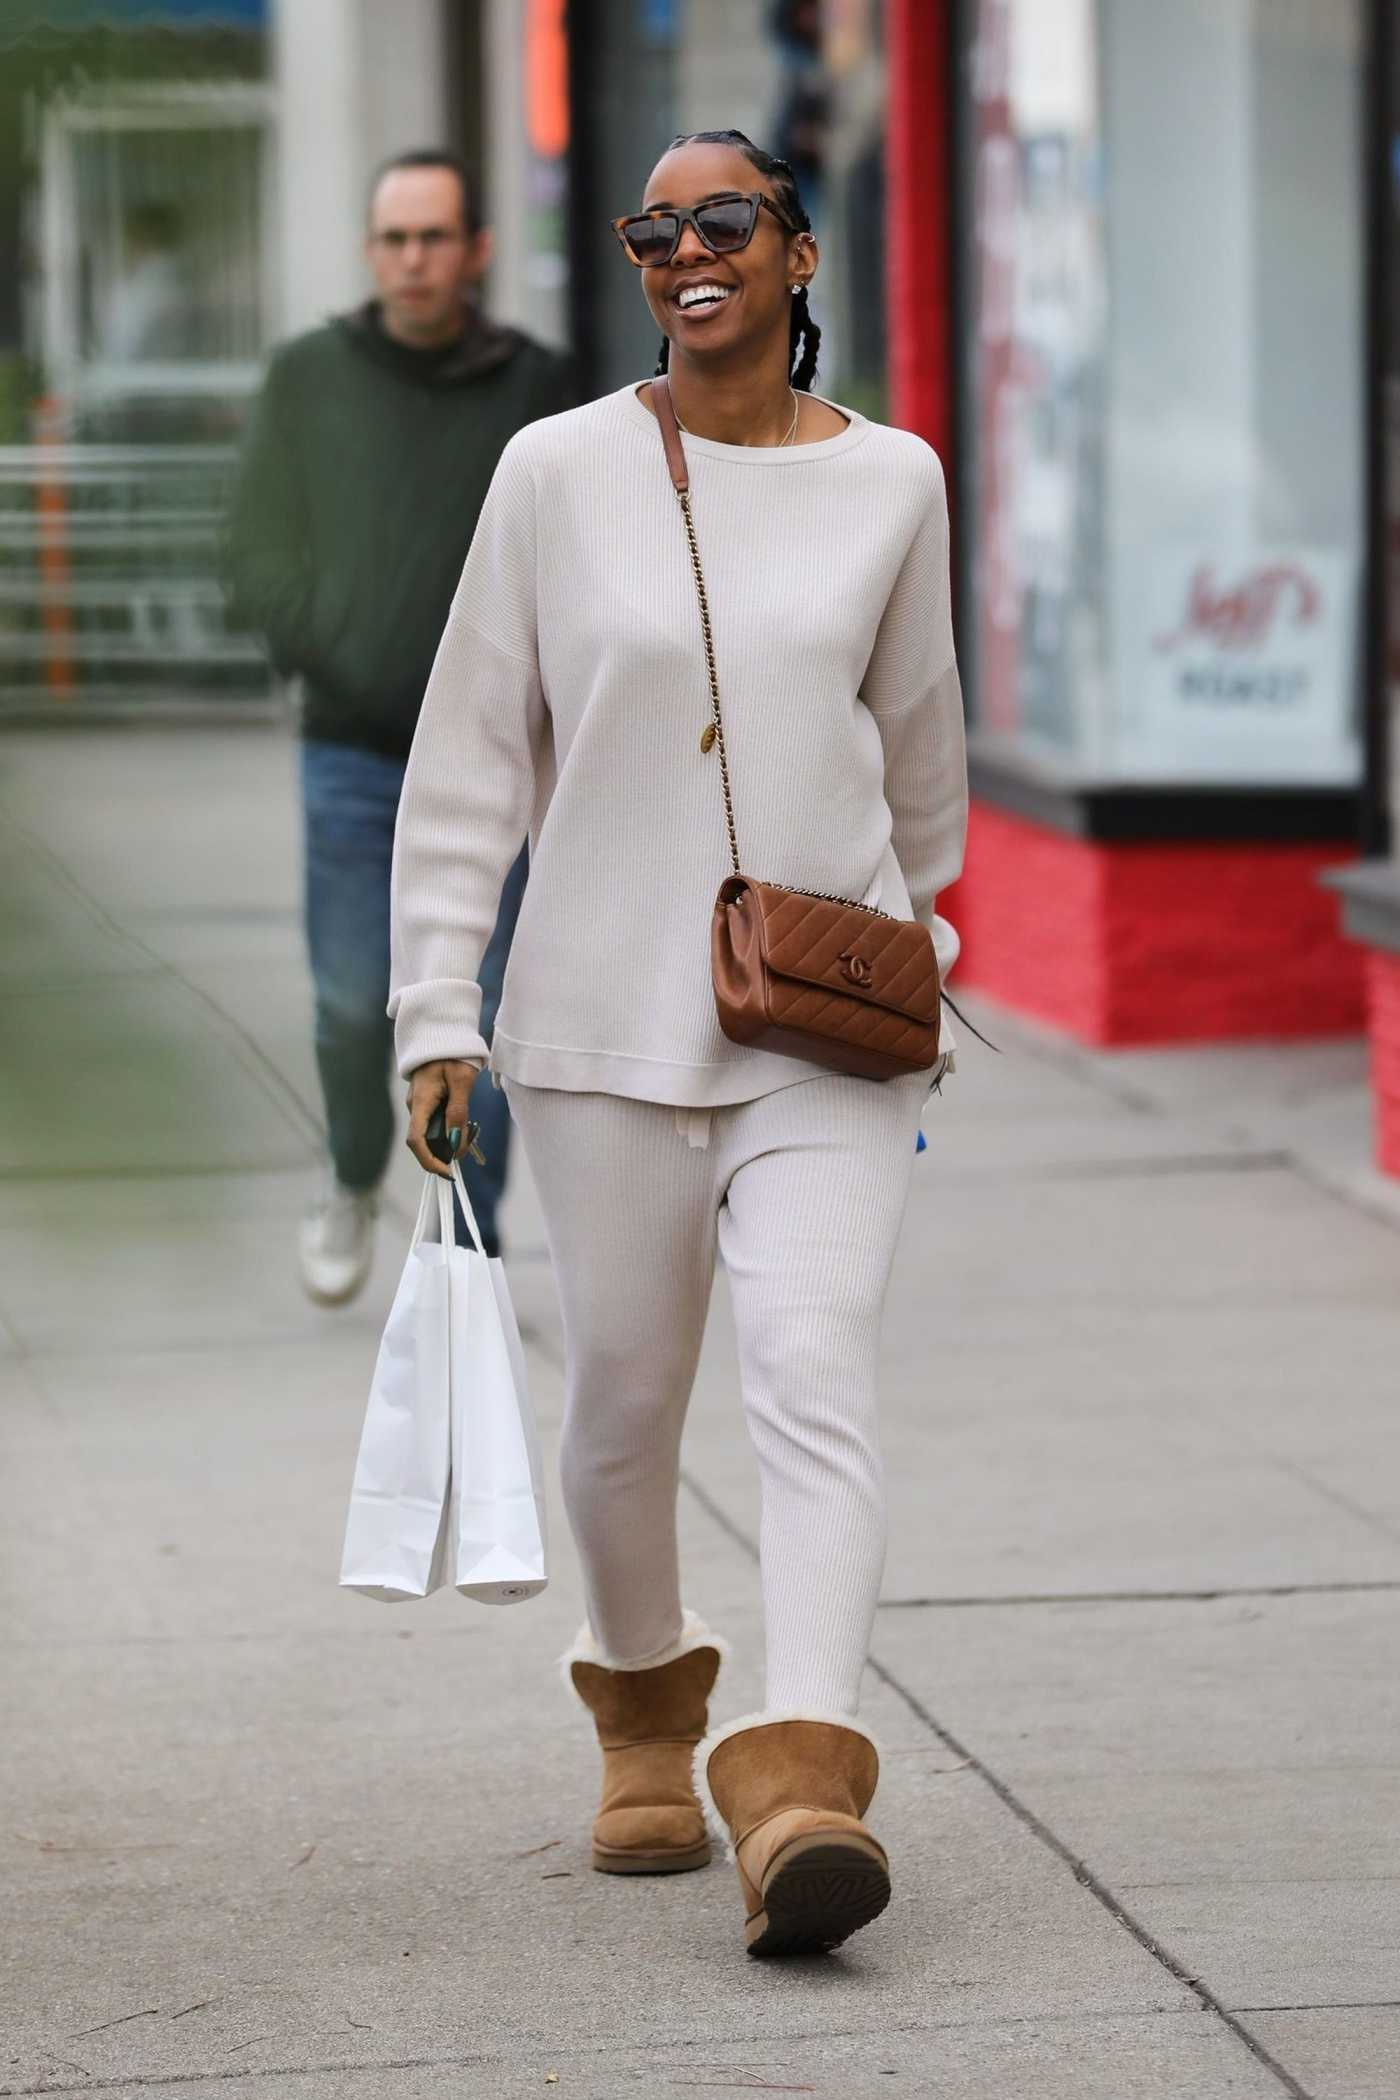 Kelly Rowland in a Beige Jogging Suit Was Seen Out in Los Angeles 12/29/2019